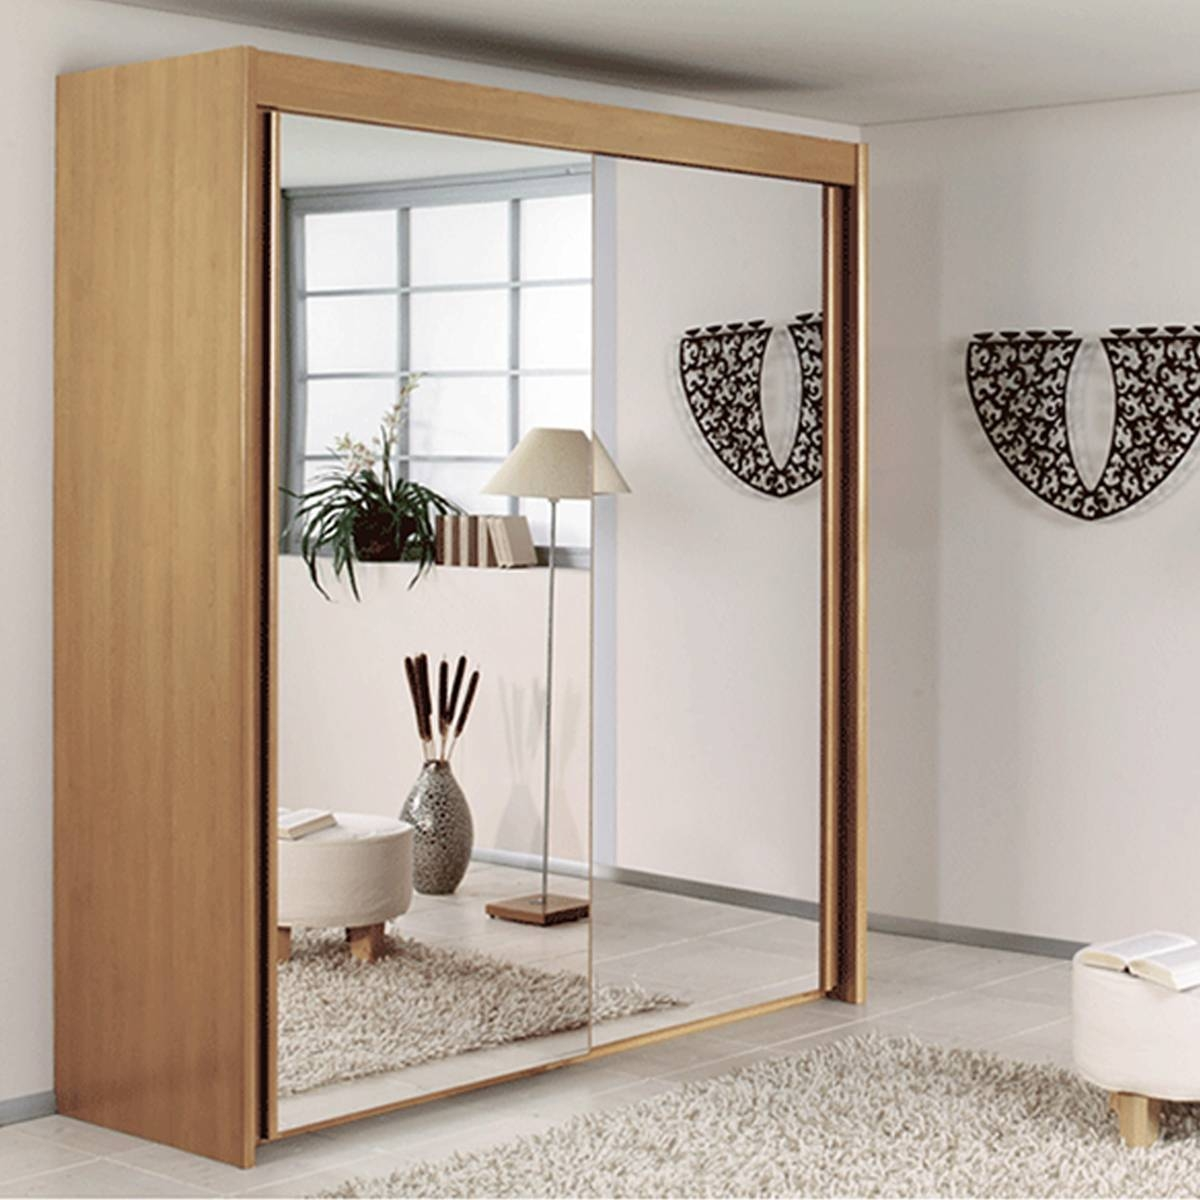 Sliding Door Mirrored Wardrobe From The House Of Reeves Croydon With Double Mirrored Wardrobes (View 9 of 15)